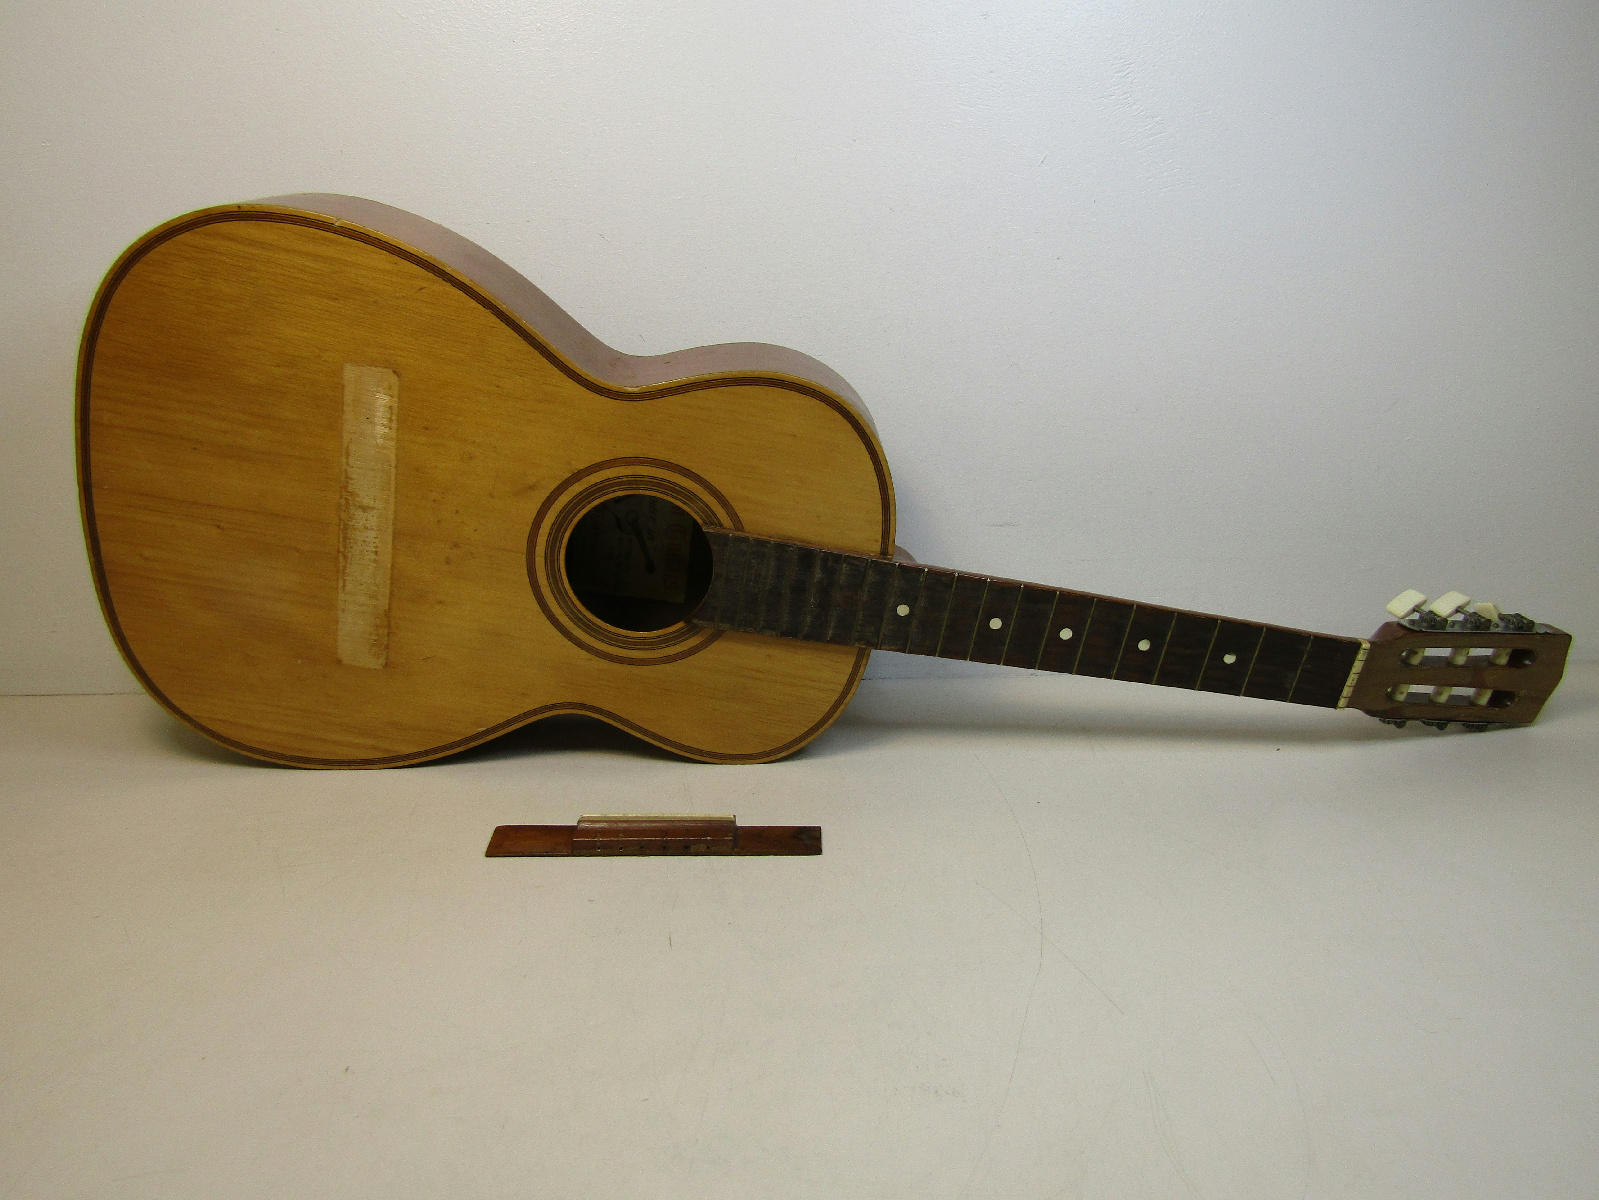 giannini tranquillo model no 2 acoustic guitar made in brazil parts repair ebay. Black Bedroom Furniture Sets. Home Design Ideas